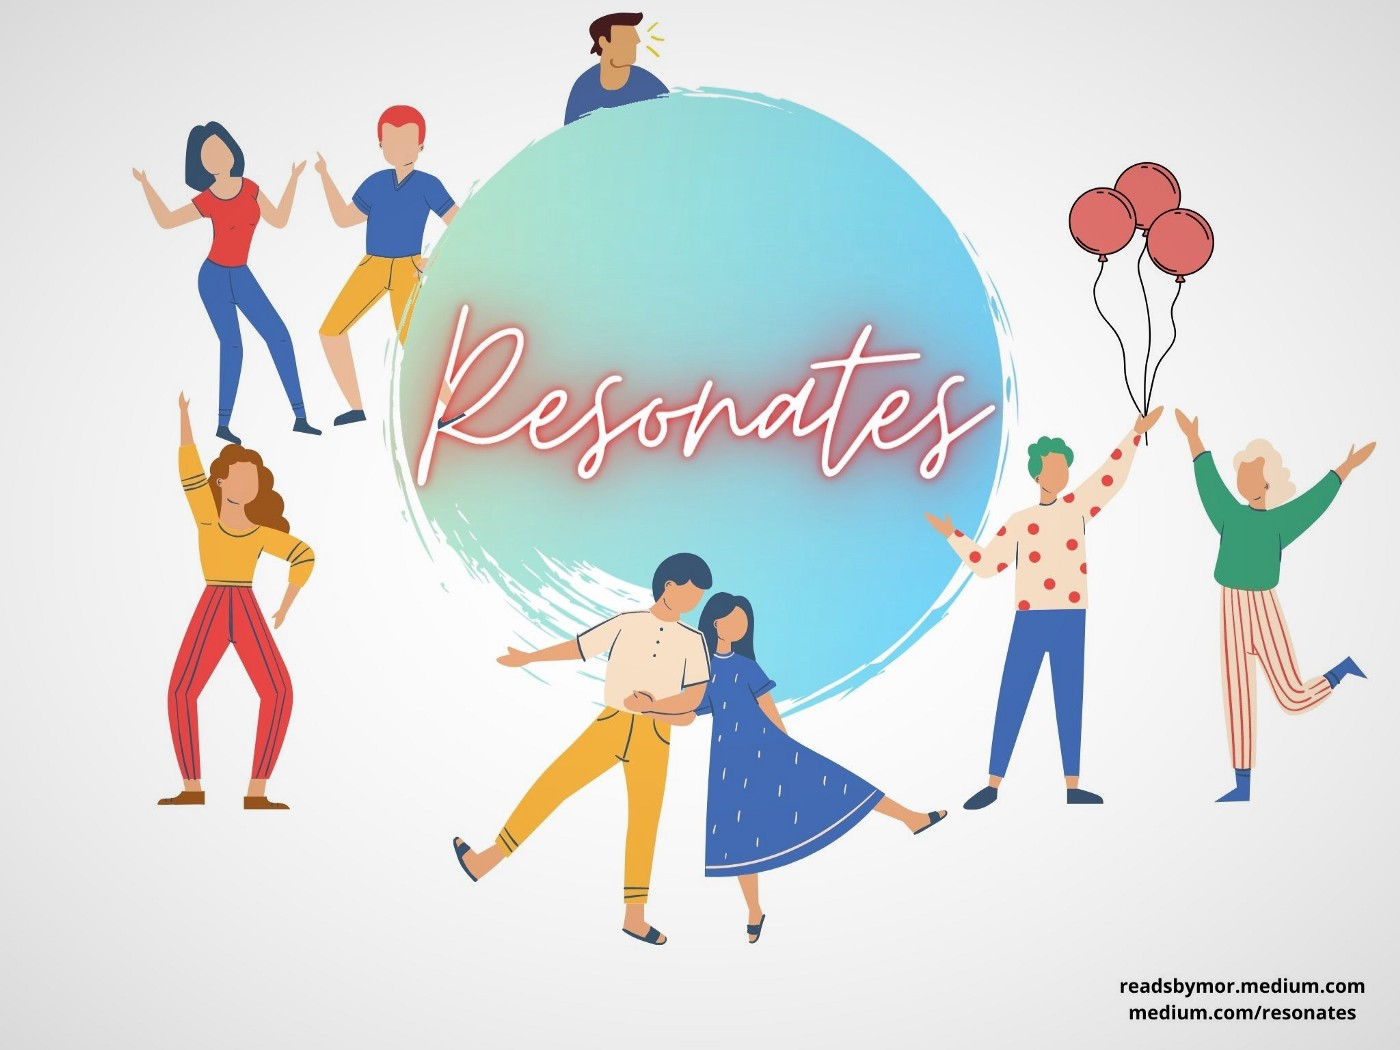 A number of people around the RESONATES logo.